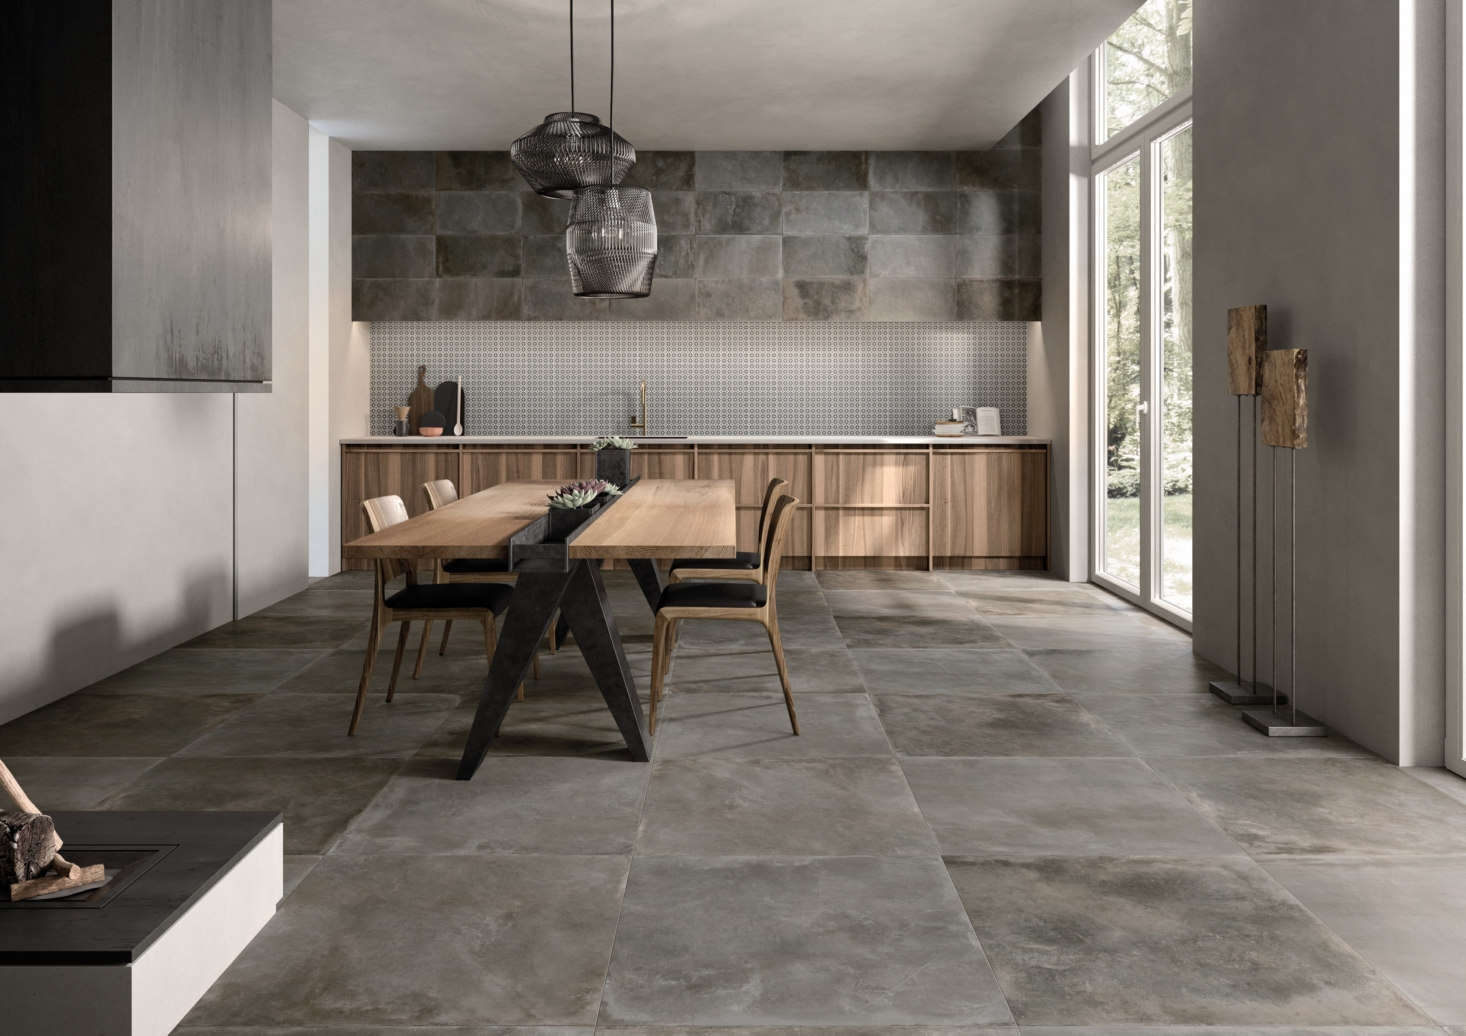 The Cocoon tile by Ricchetti has the look of a concrete floor, but is actually porcelain stoneware.